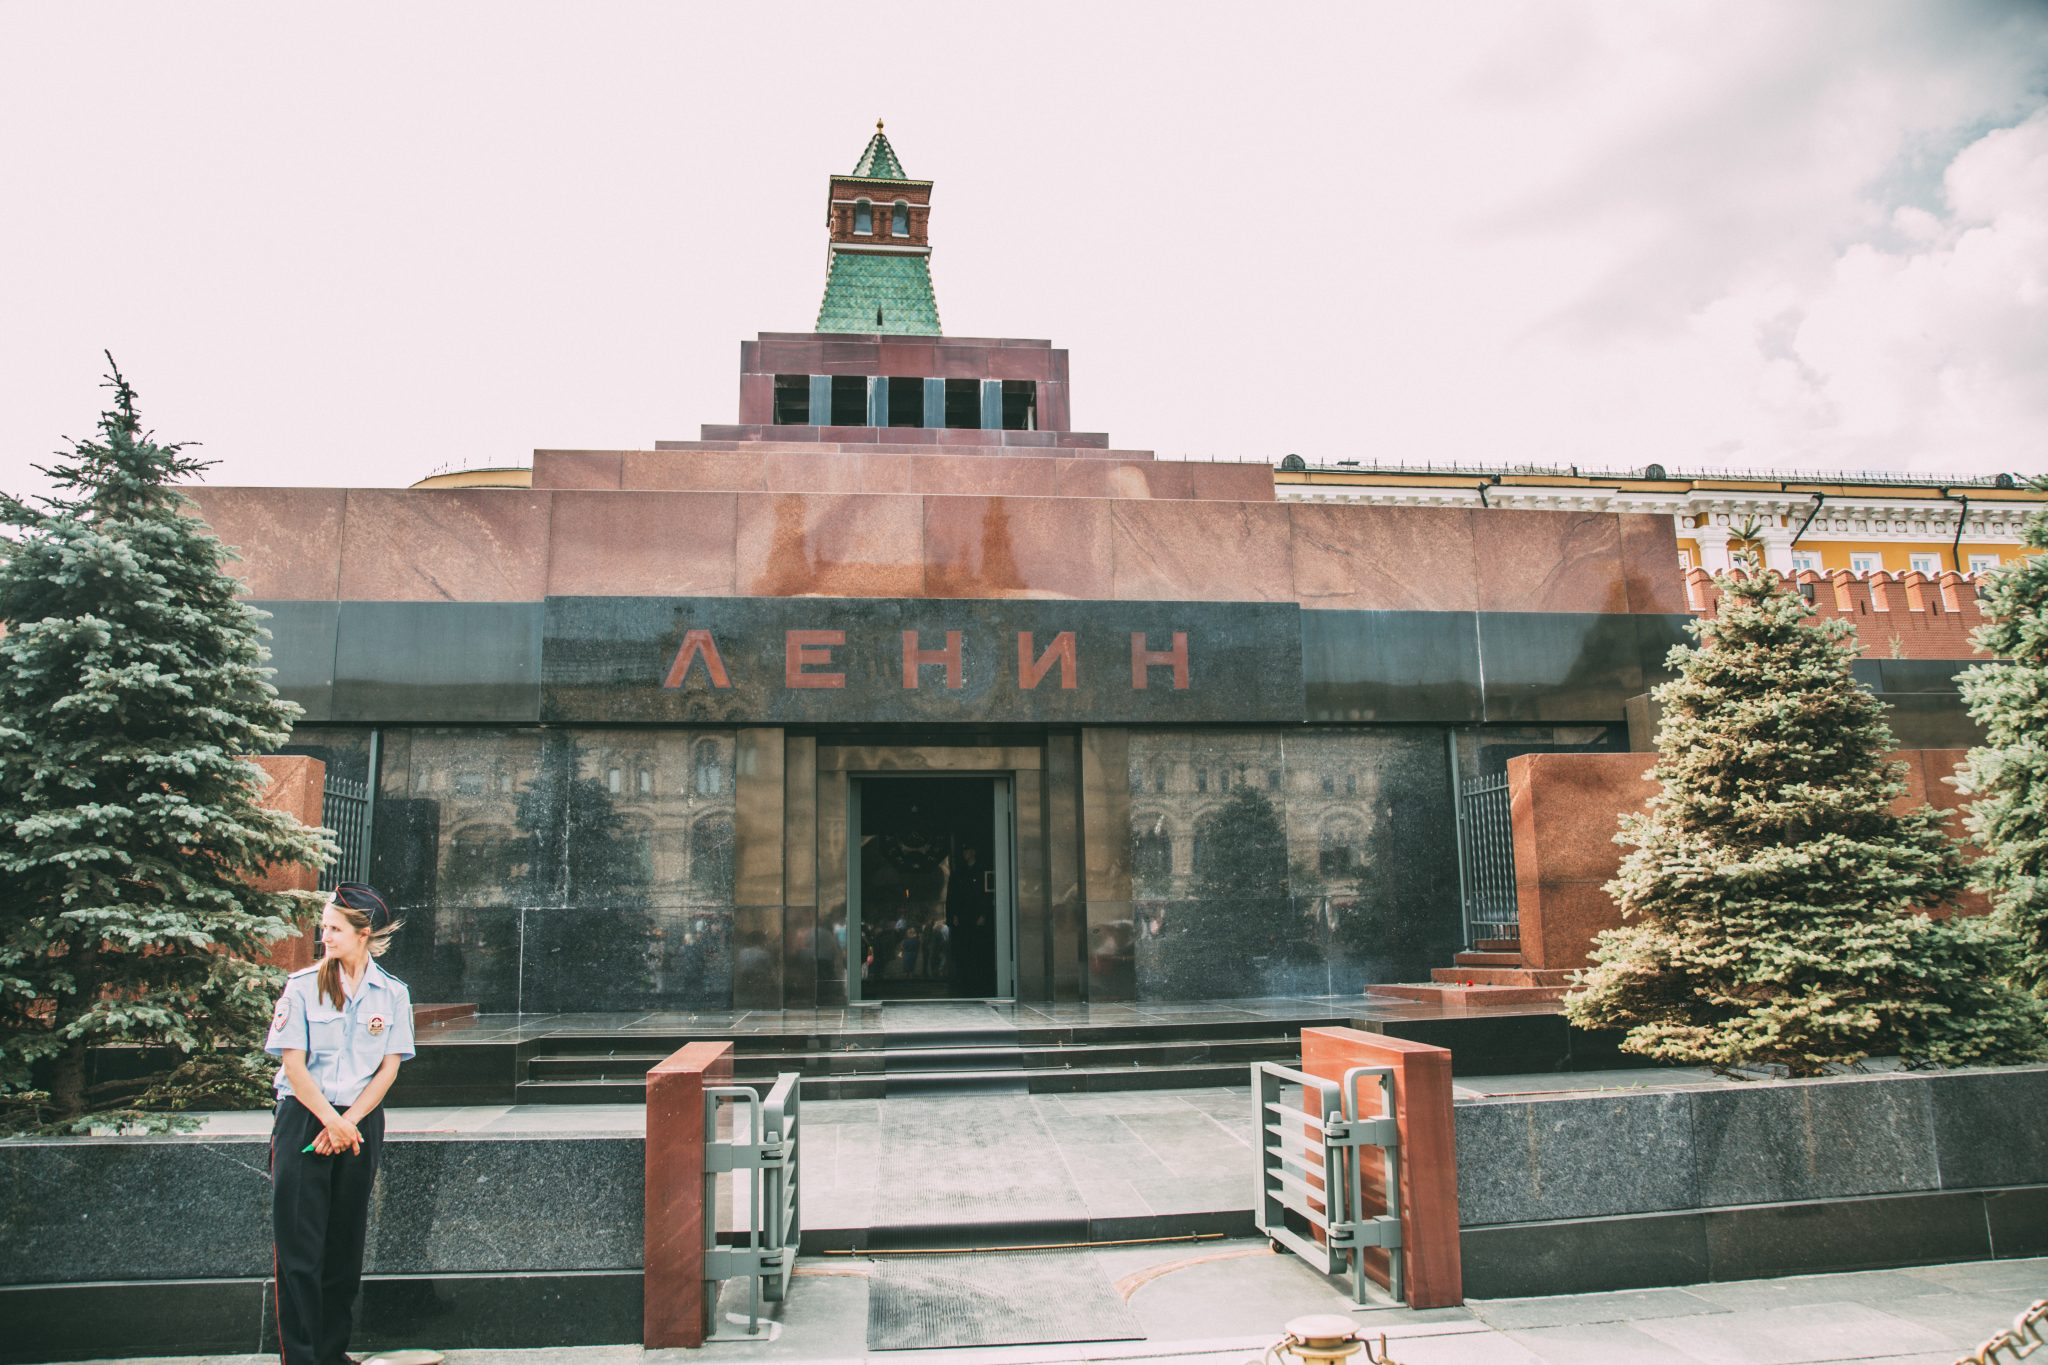 Lenin's Mausoleum in Red Square - one of many crazy things to do in Moscow, Russia